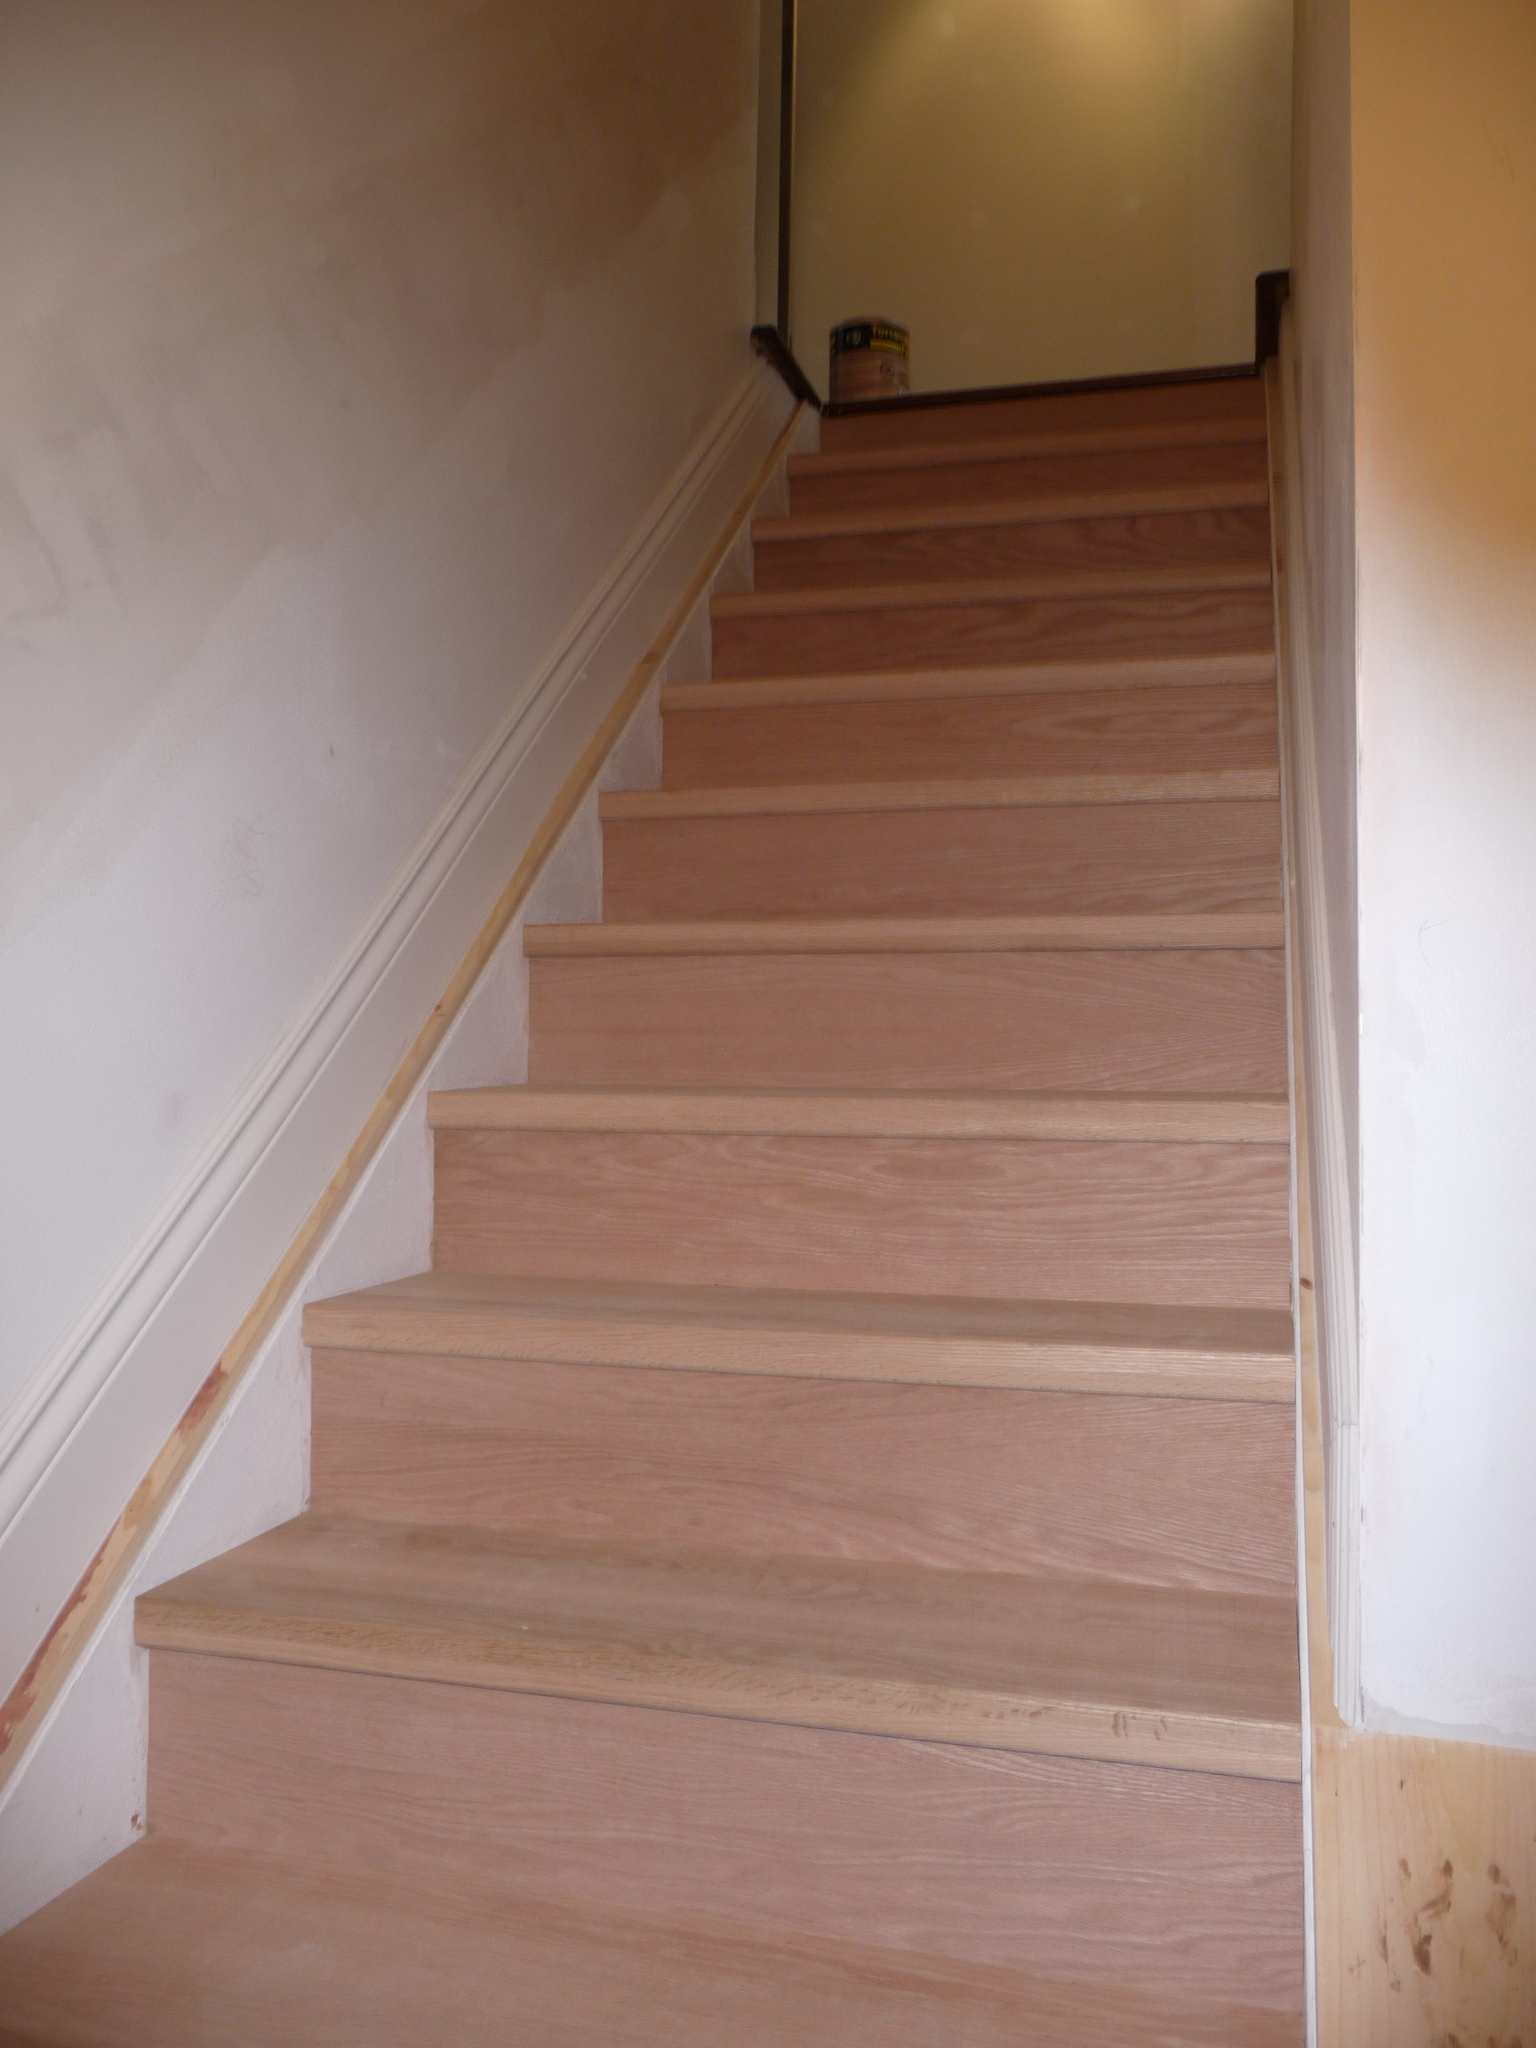 our first job was to repair and paint the stairway there was a lot of